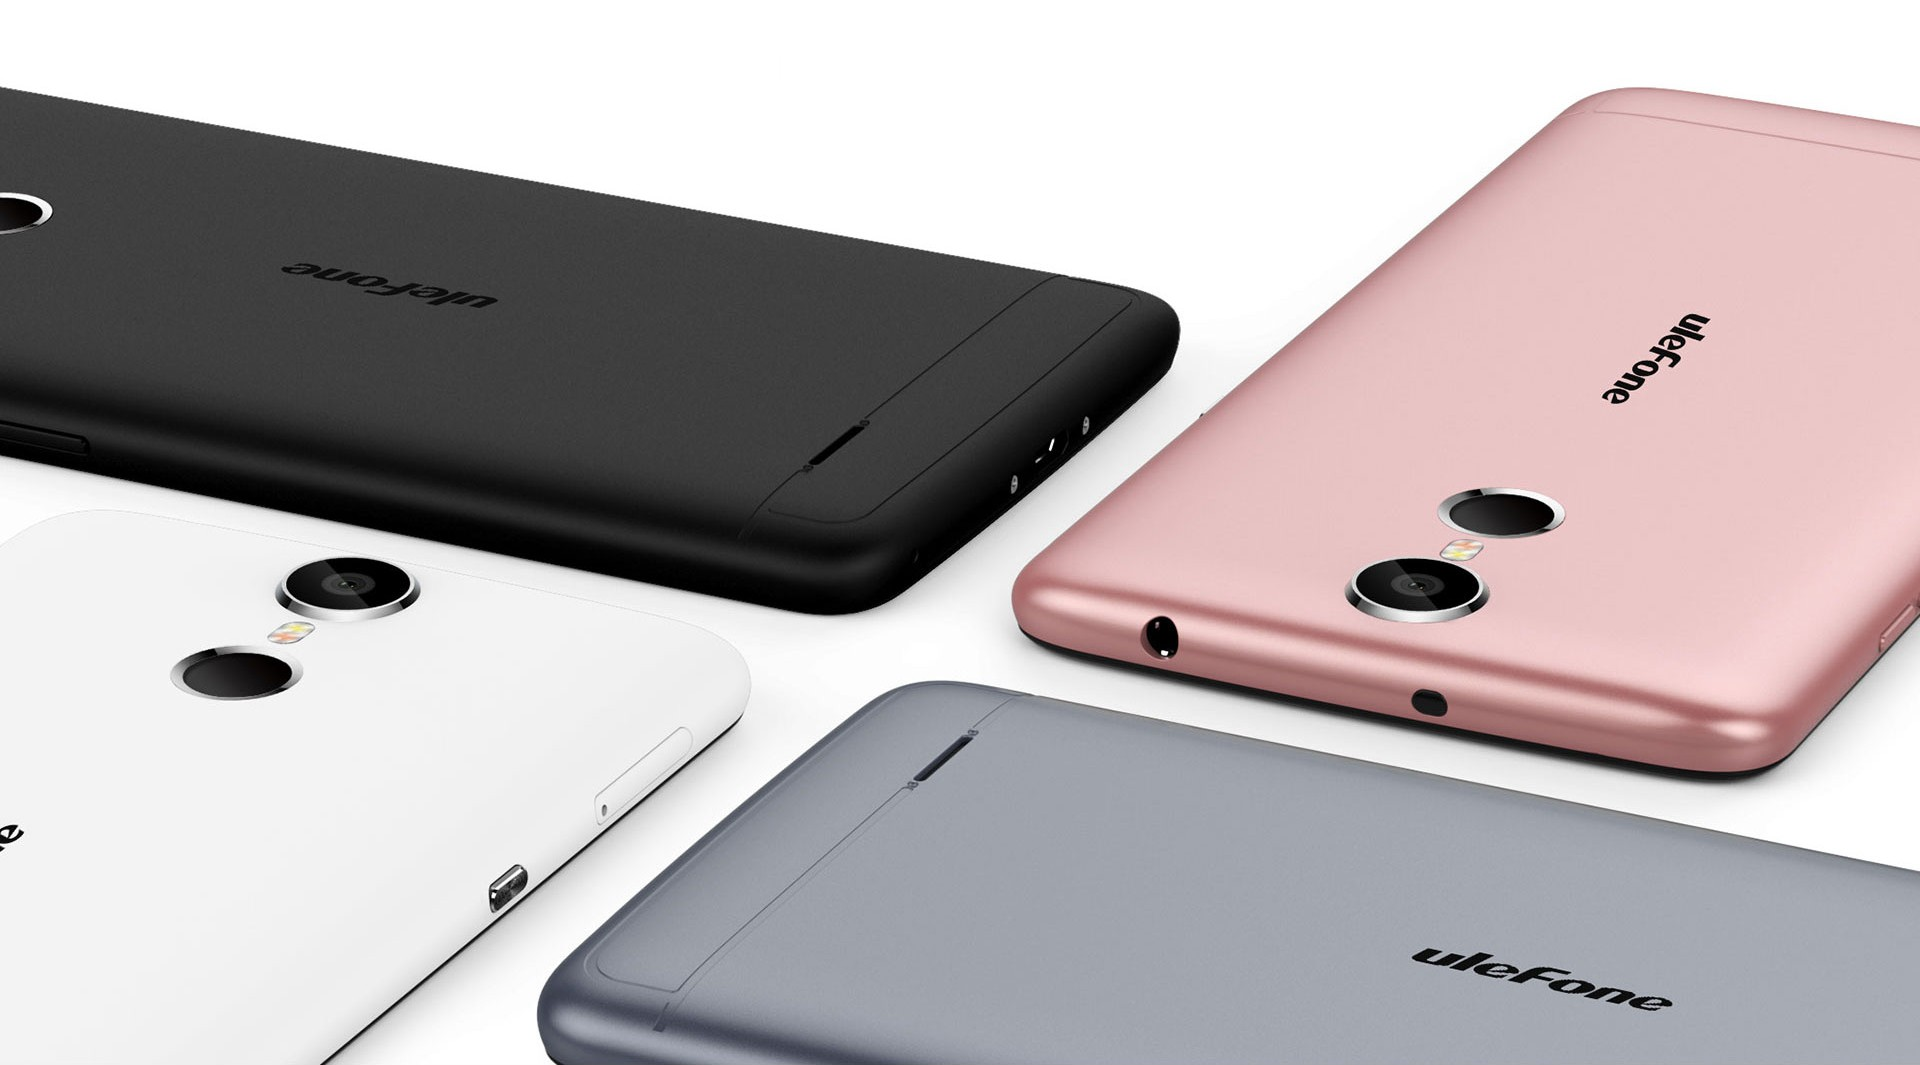 Ulefone Vienna four phones with different colors showing their back on a white background.